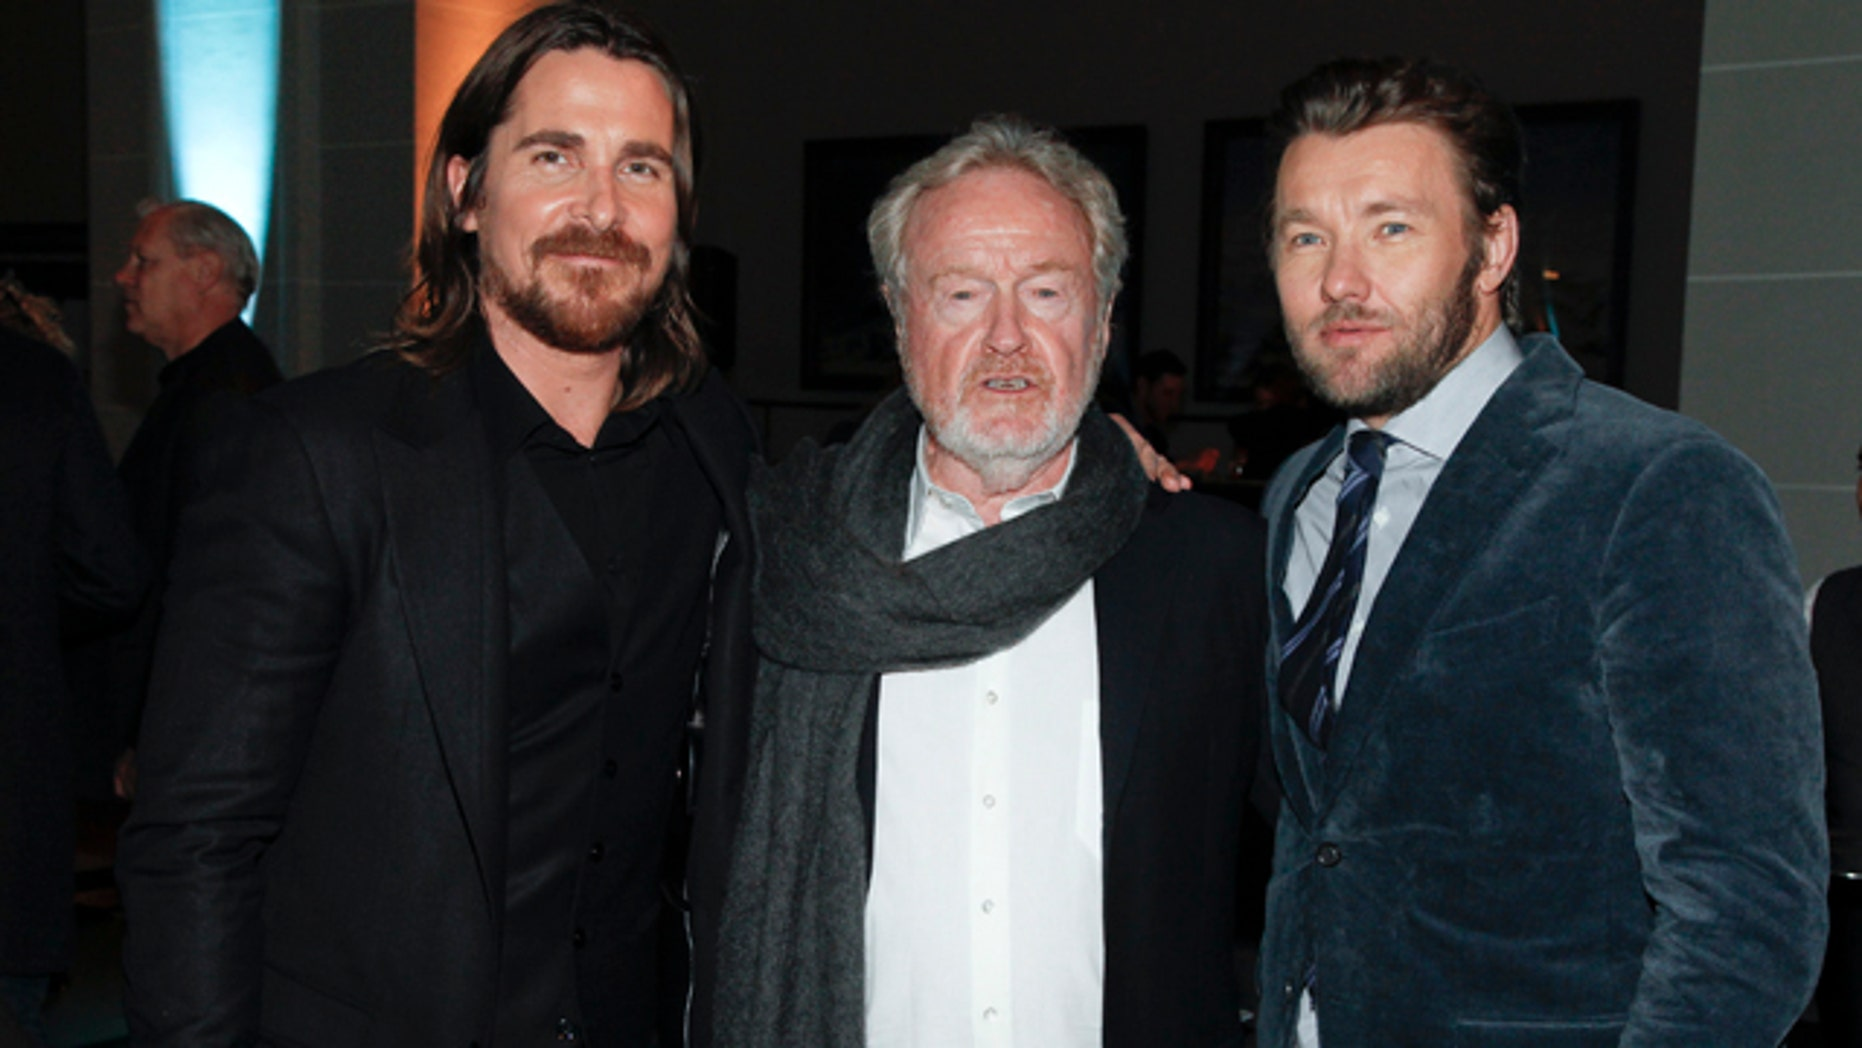 December 7, 2014: Christian Bale, Ridley Scott and Joel Edgerton attend an after party for the premiere of 'Exodus: Gods and Kings' at The Brooklyn Museum on Sunday, Dec. 7, 2014, in New York. (Photo Andy Kropa/Invision/AP)